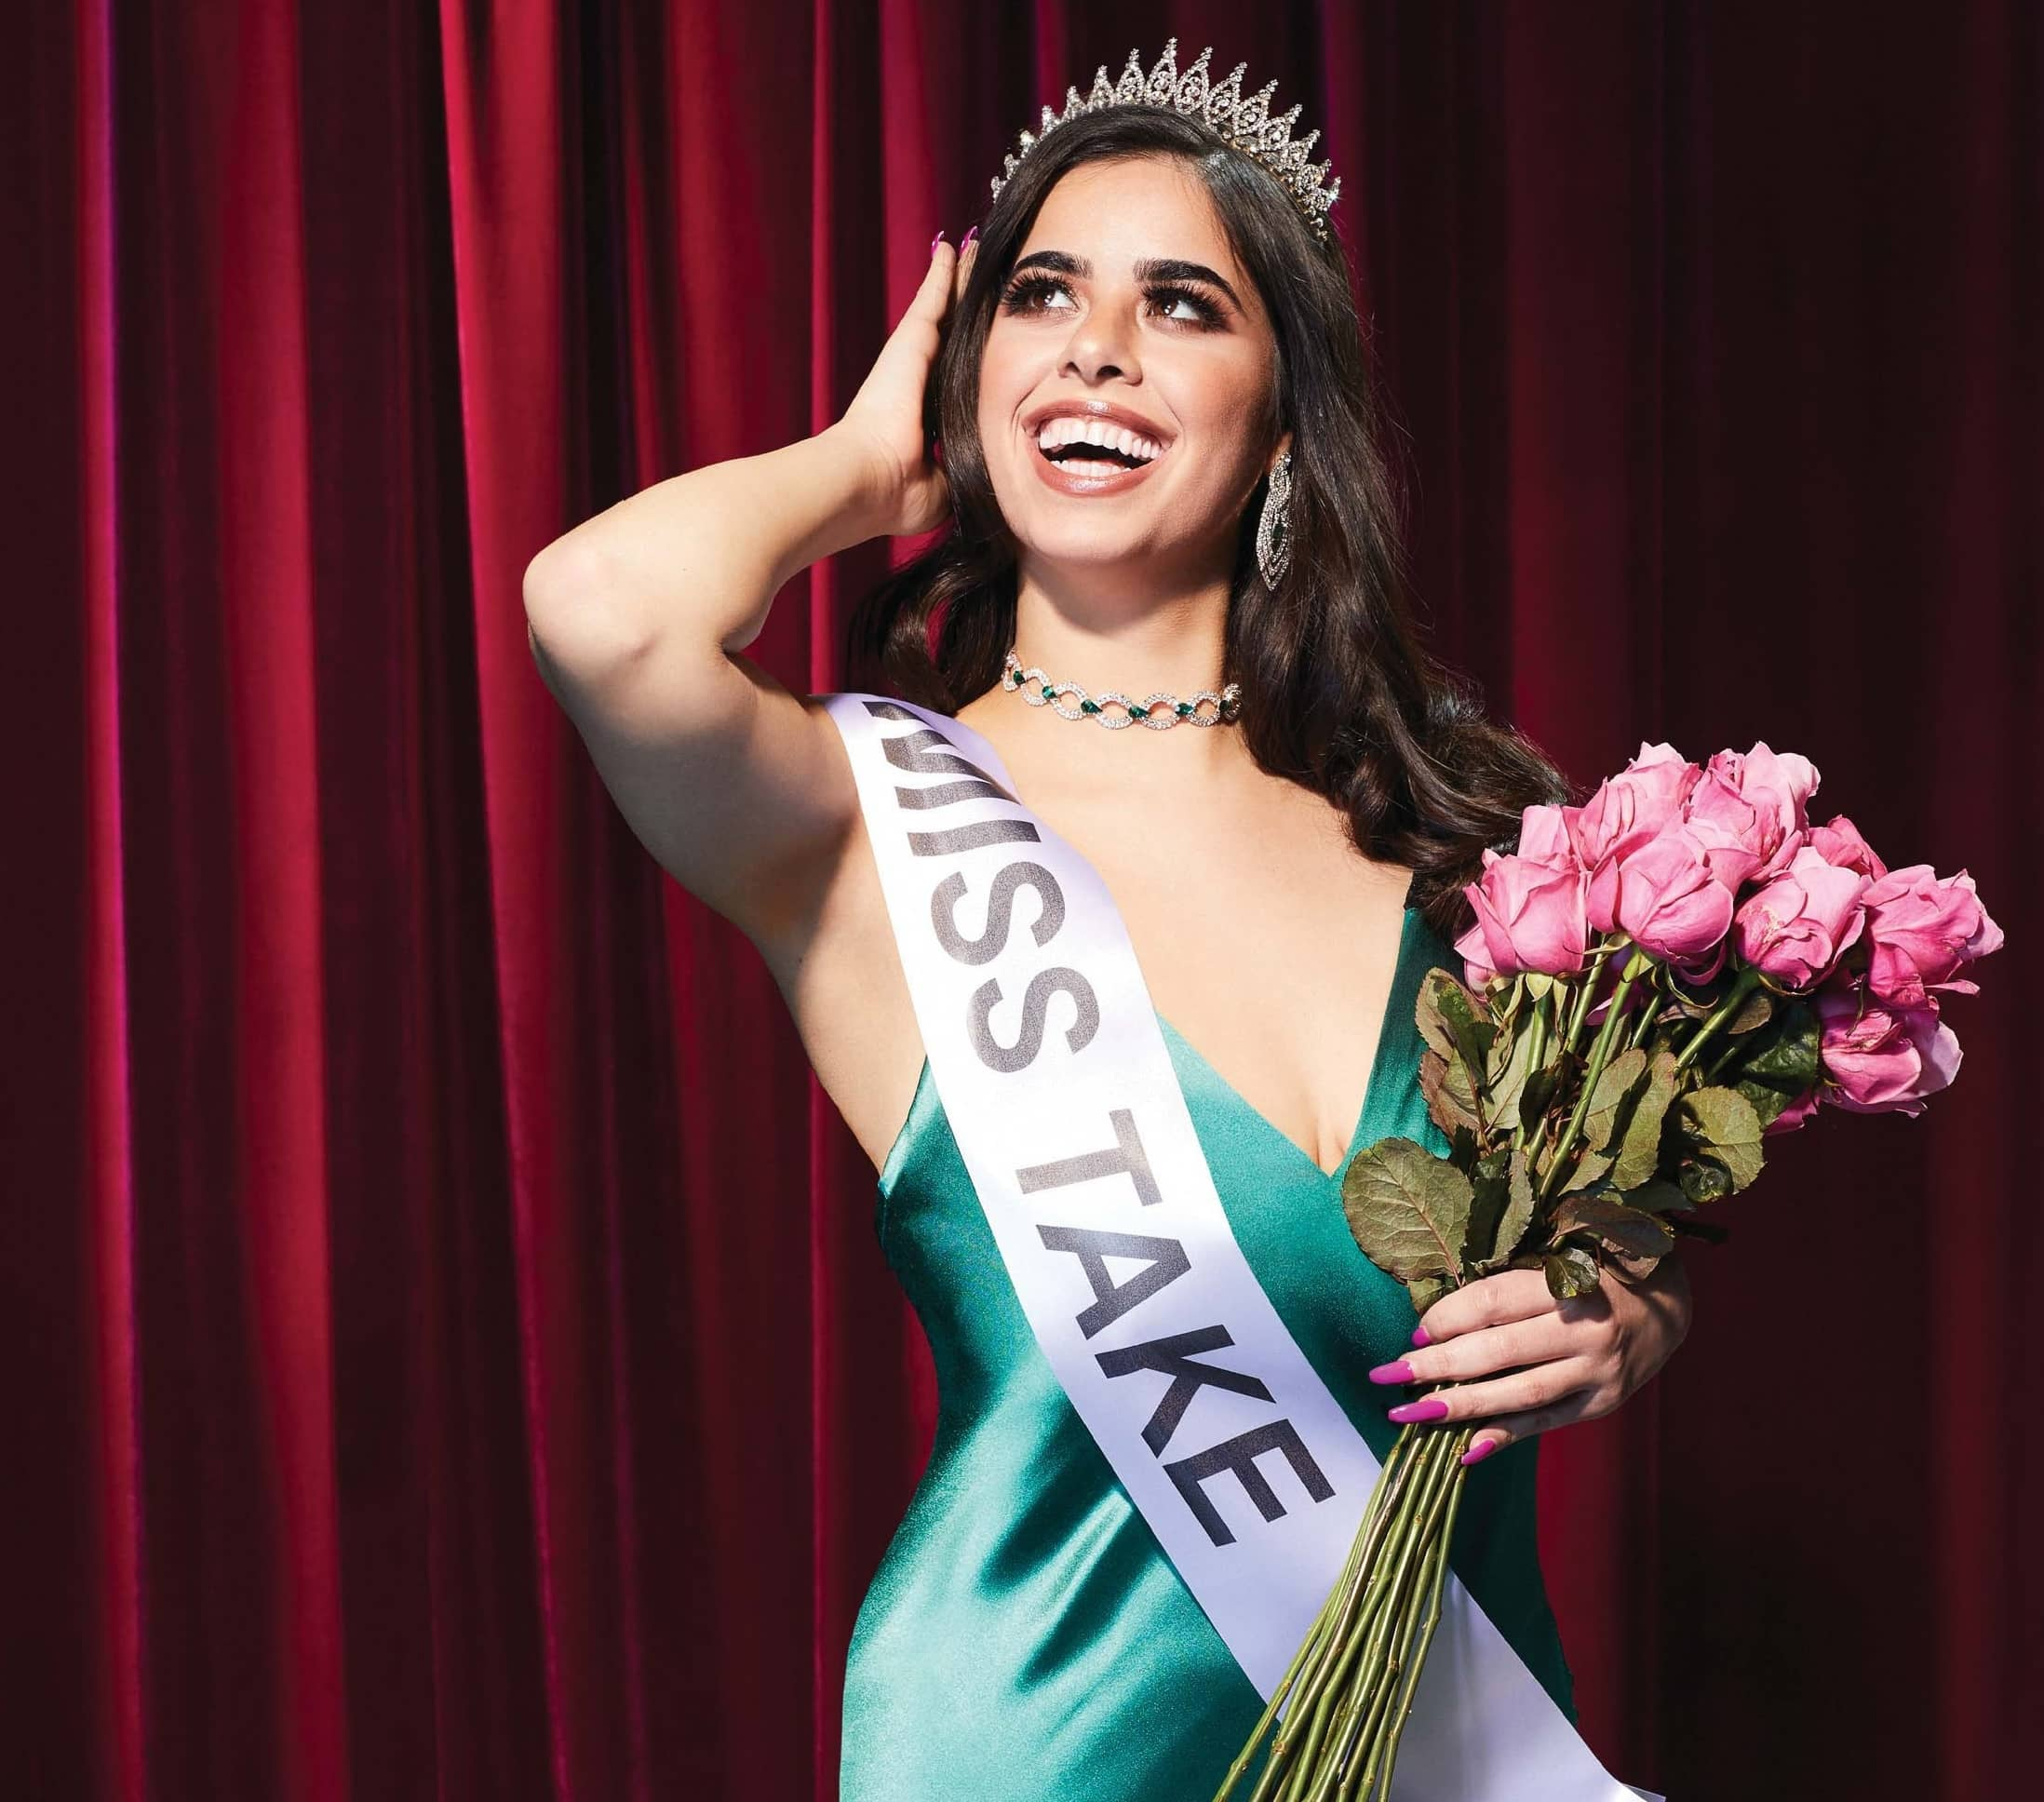 What It's Really Like To Compete In A Beauty Pageant